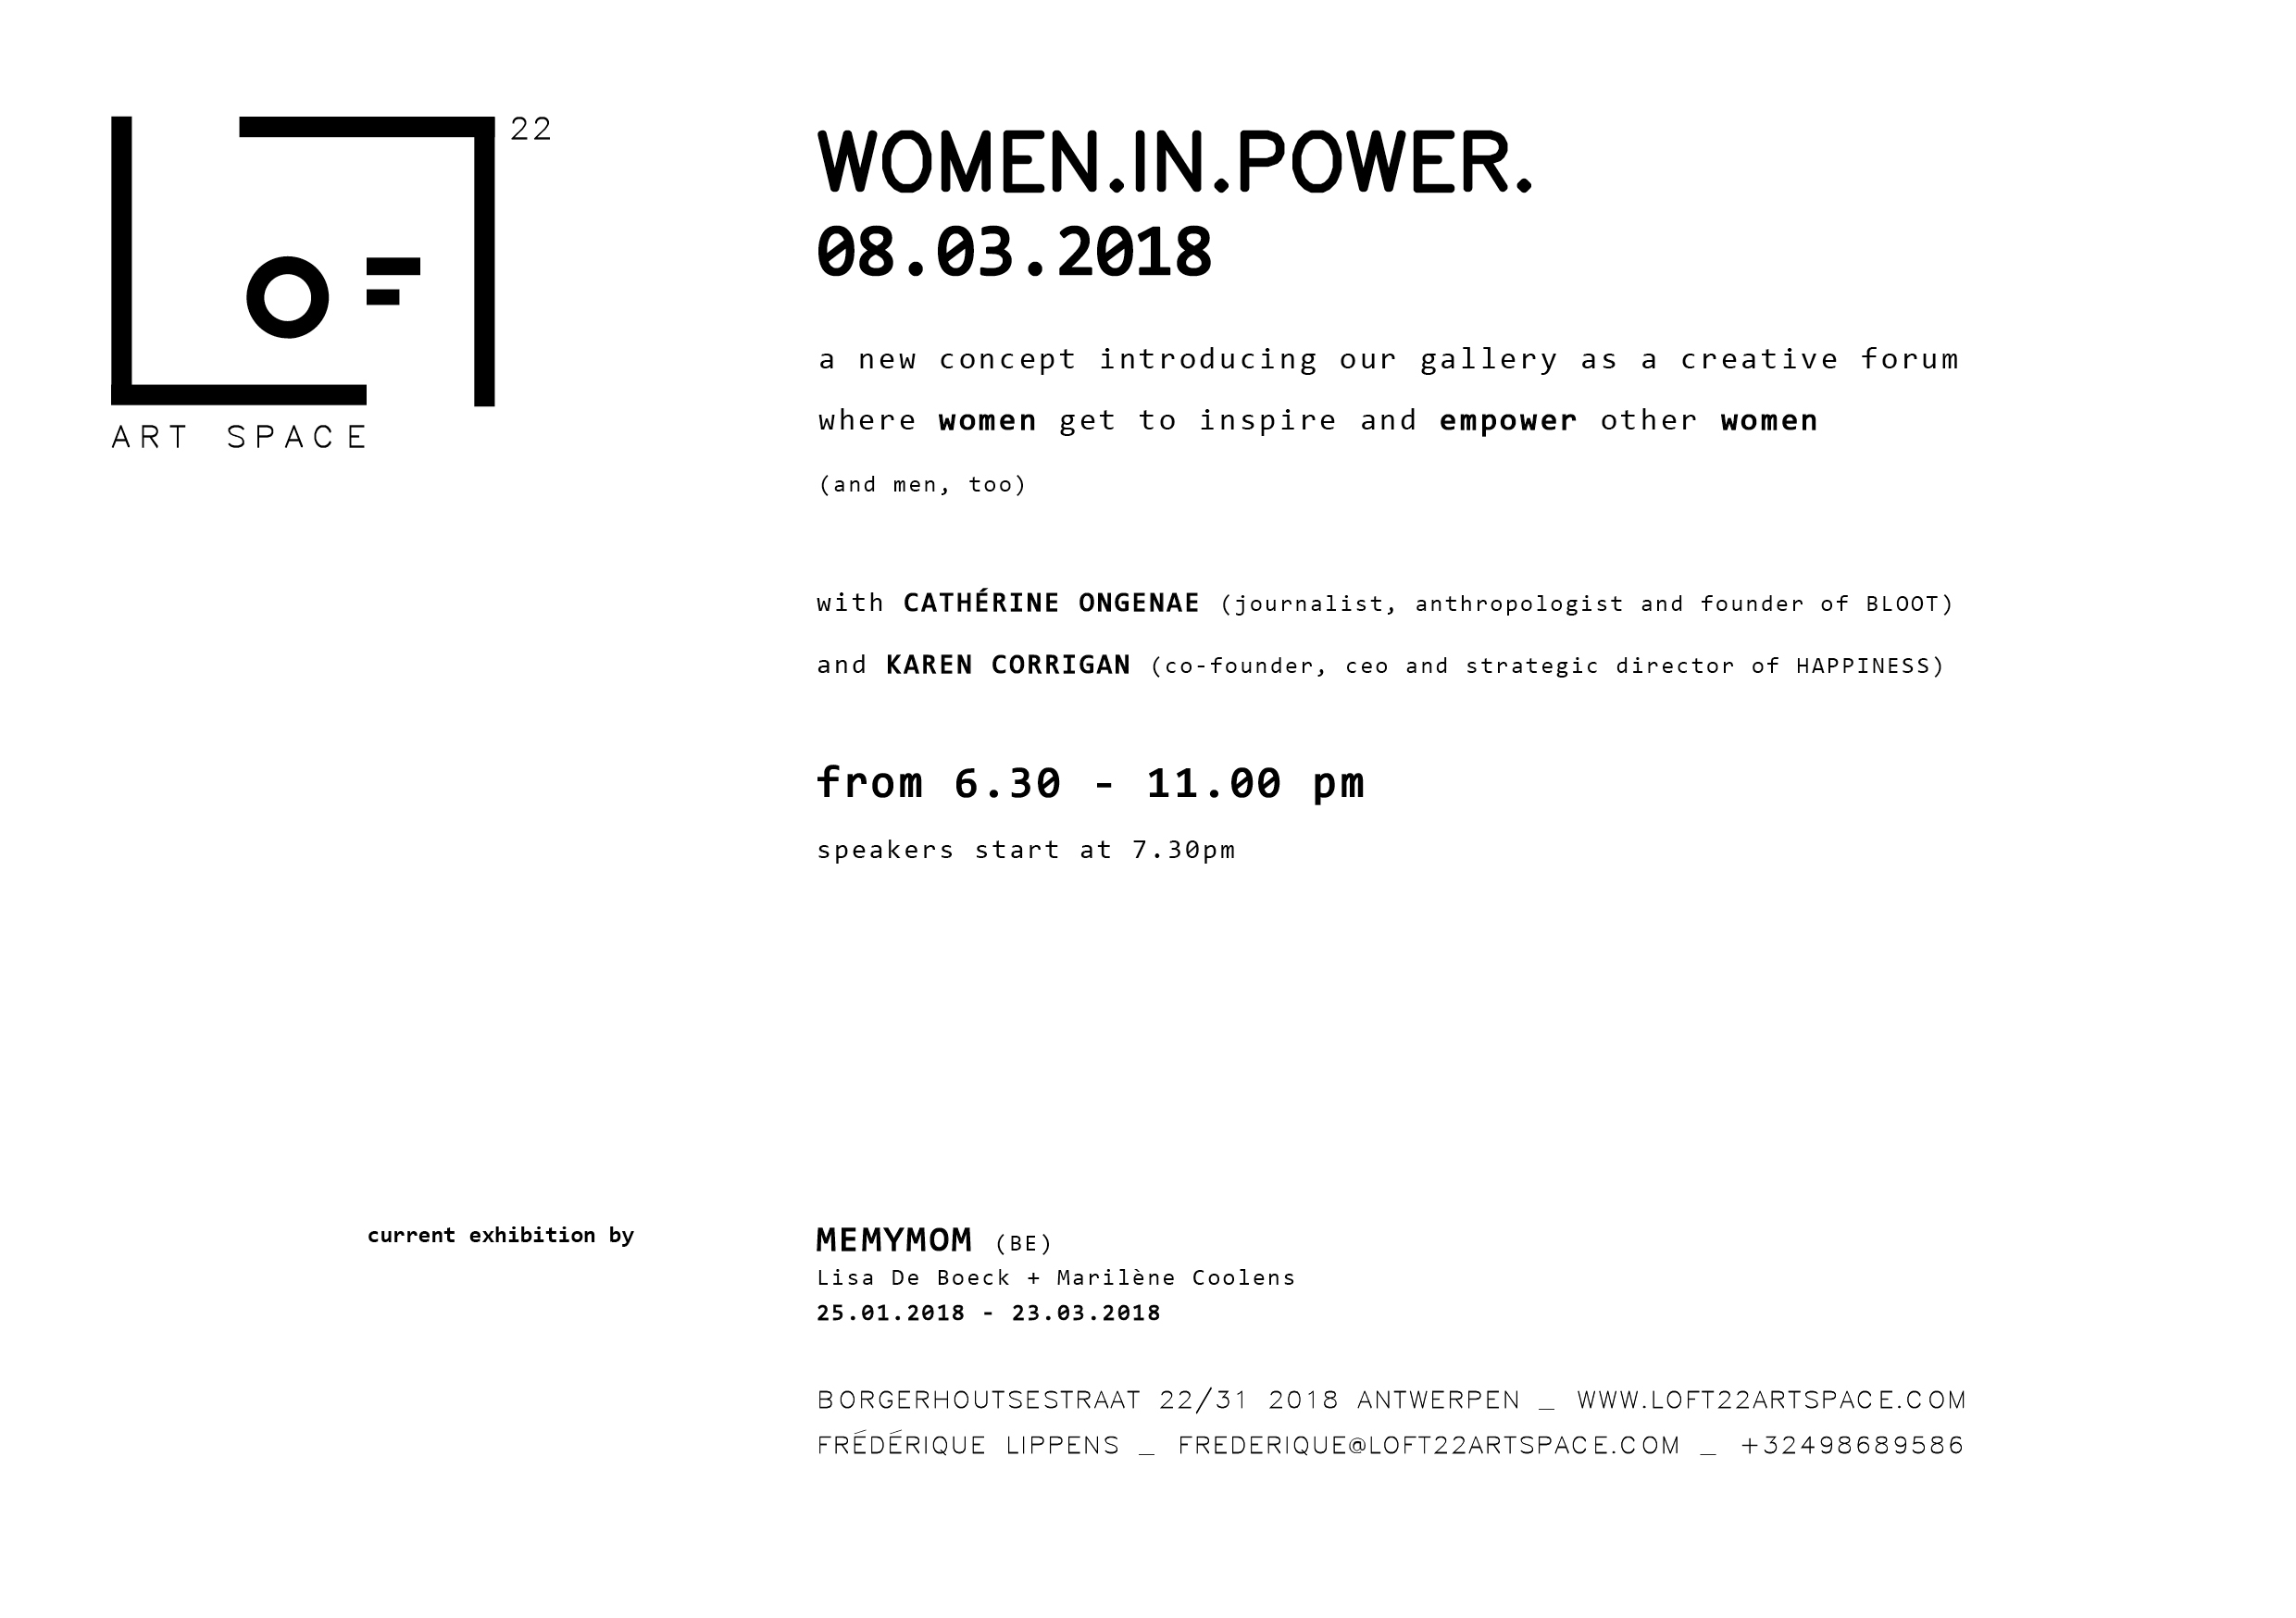 LOFT22 art space_invitation_WOMEN IN POWER 08.03_back_speakers.jpg